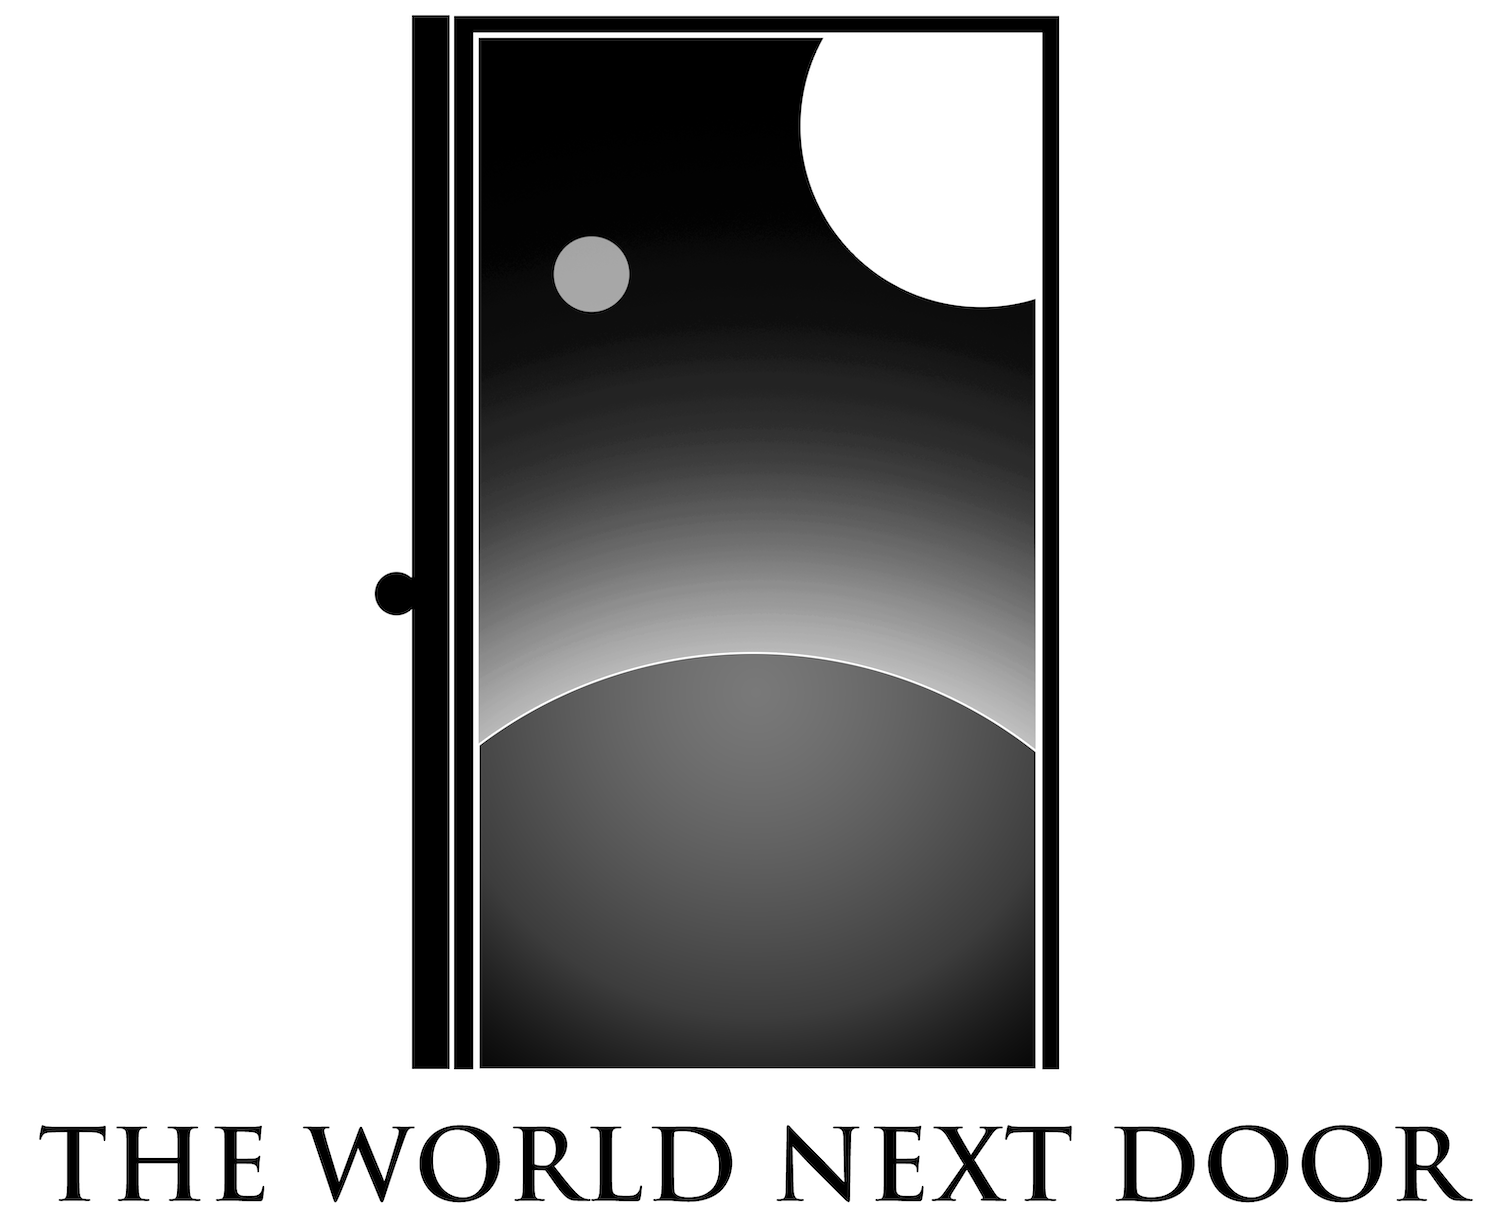 The World Next Door image